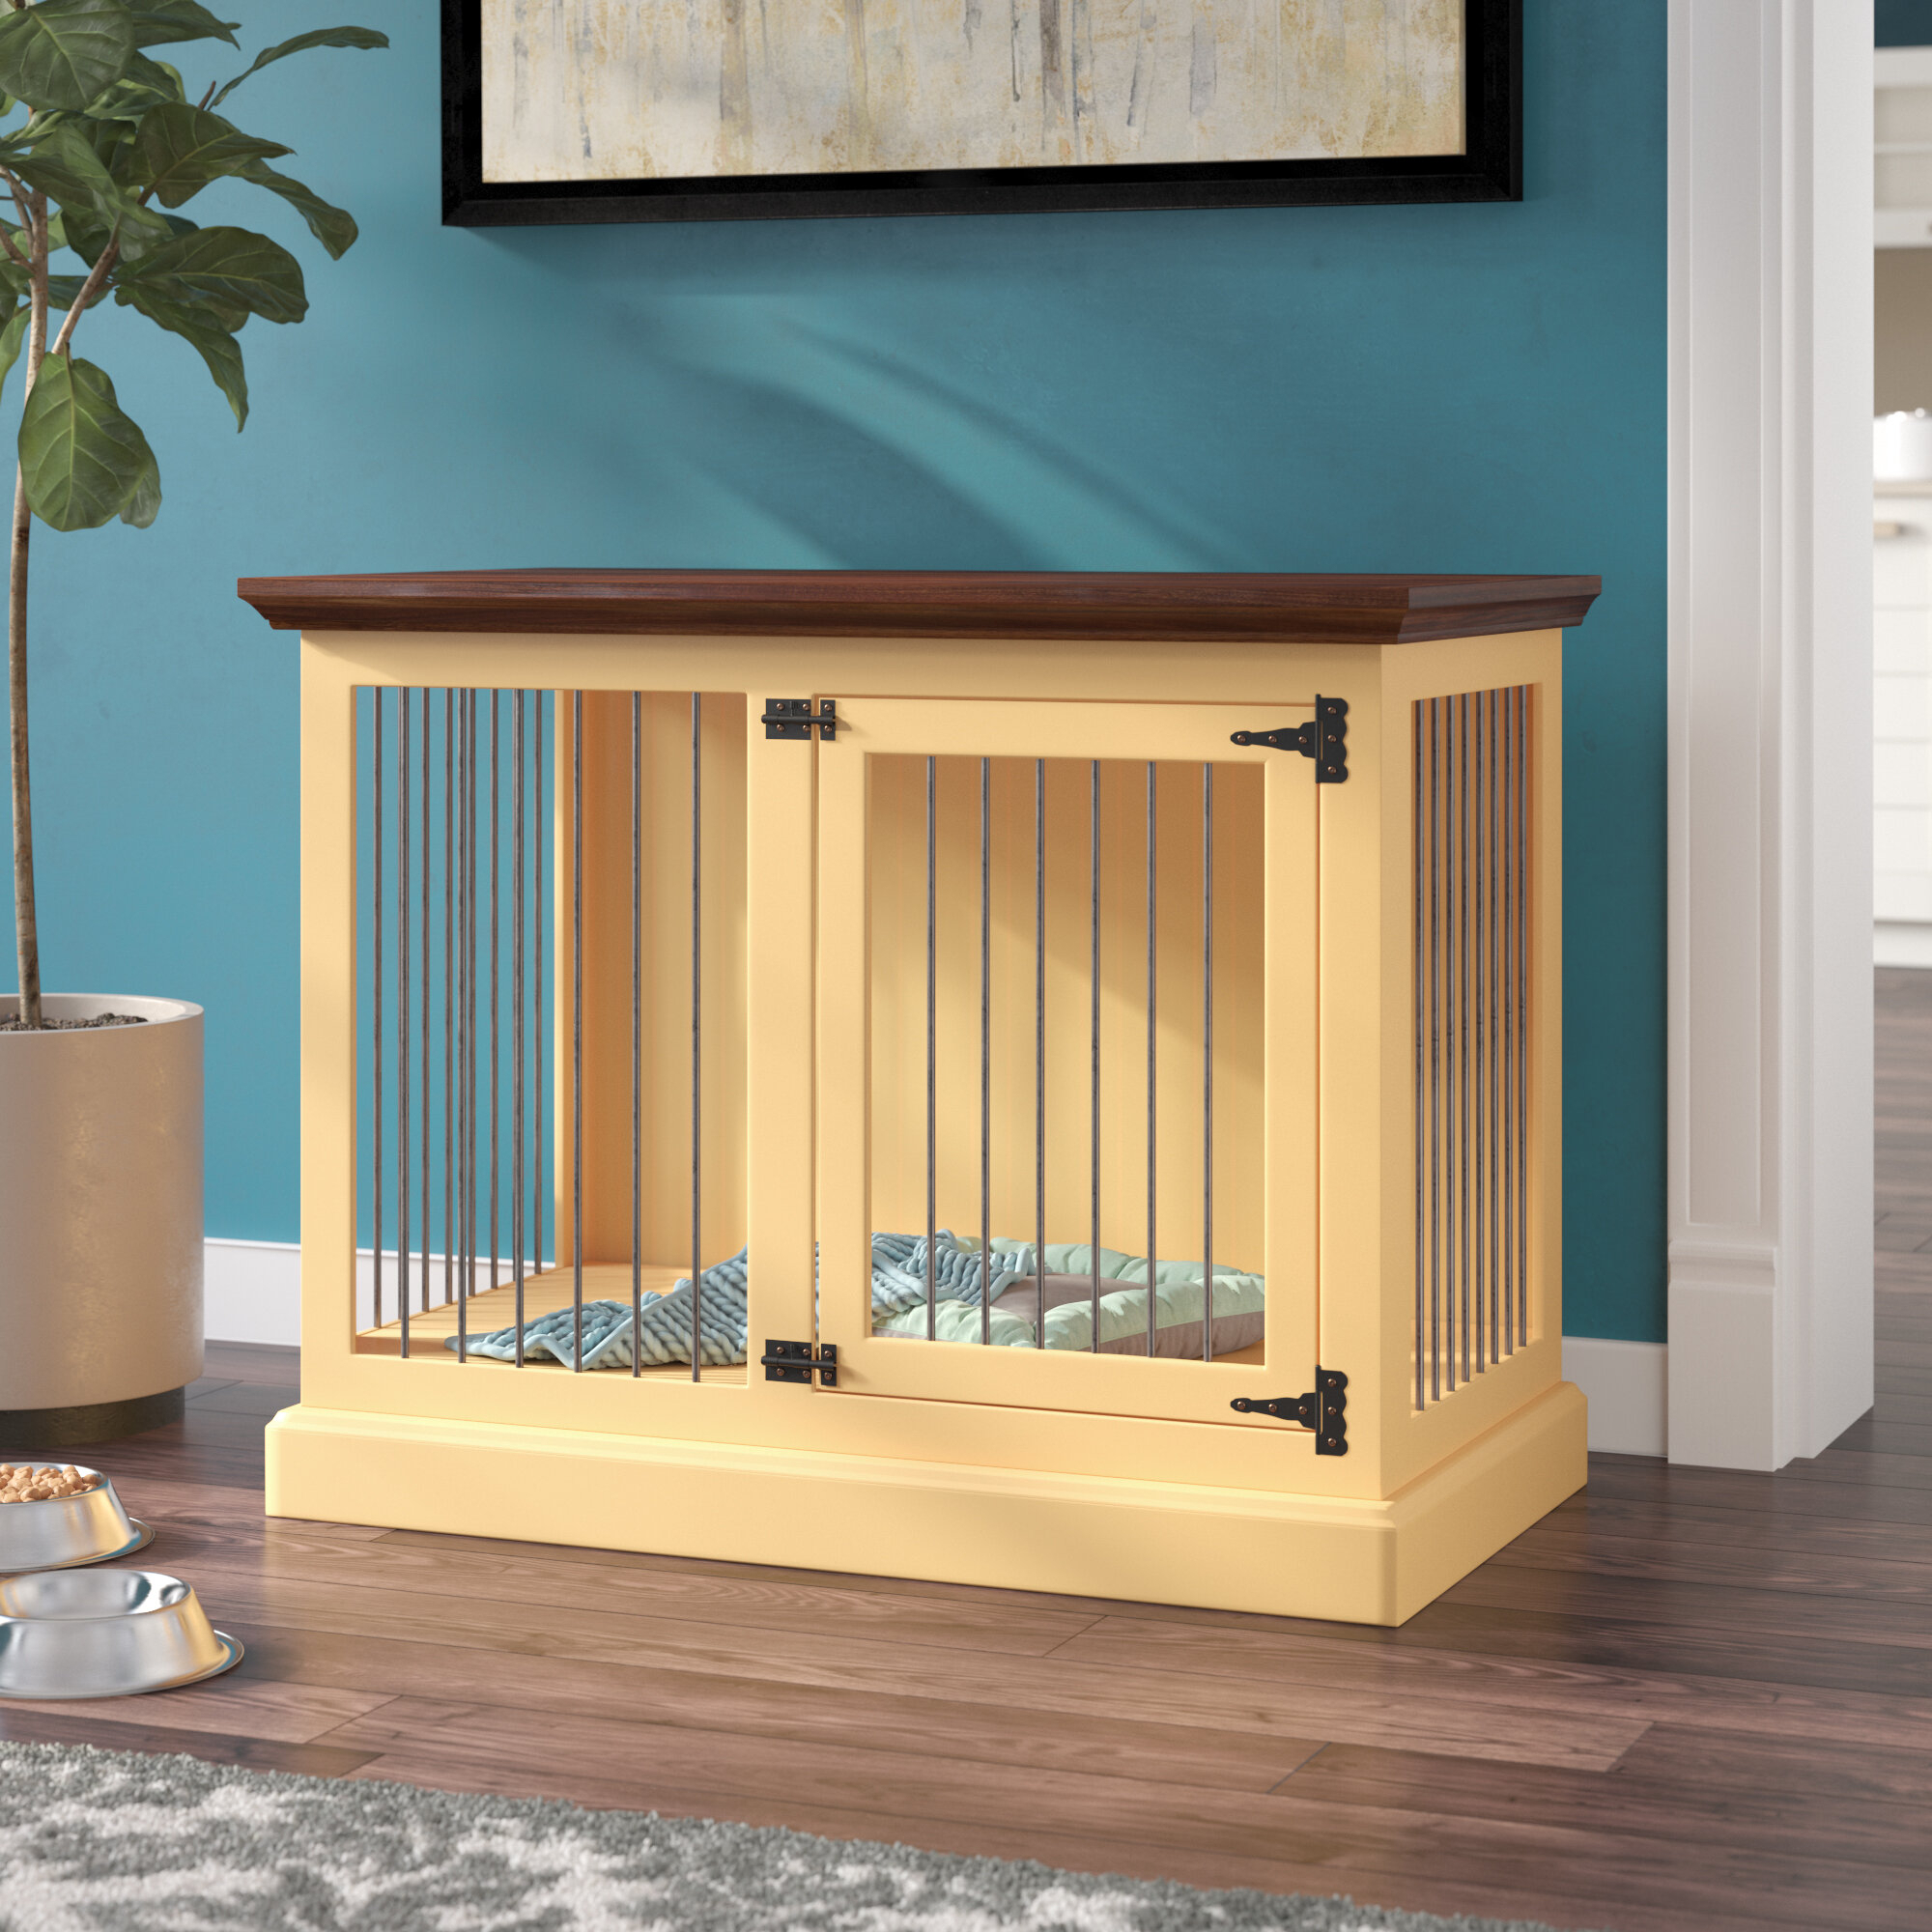 Picture of: Wood Dog Crate Furniture You Ll Love In 2020 Visualhunt